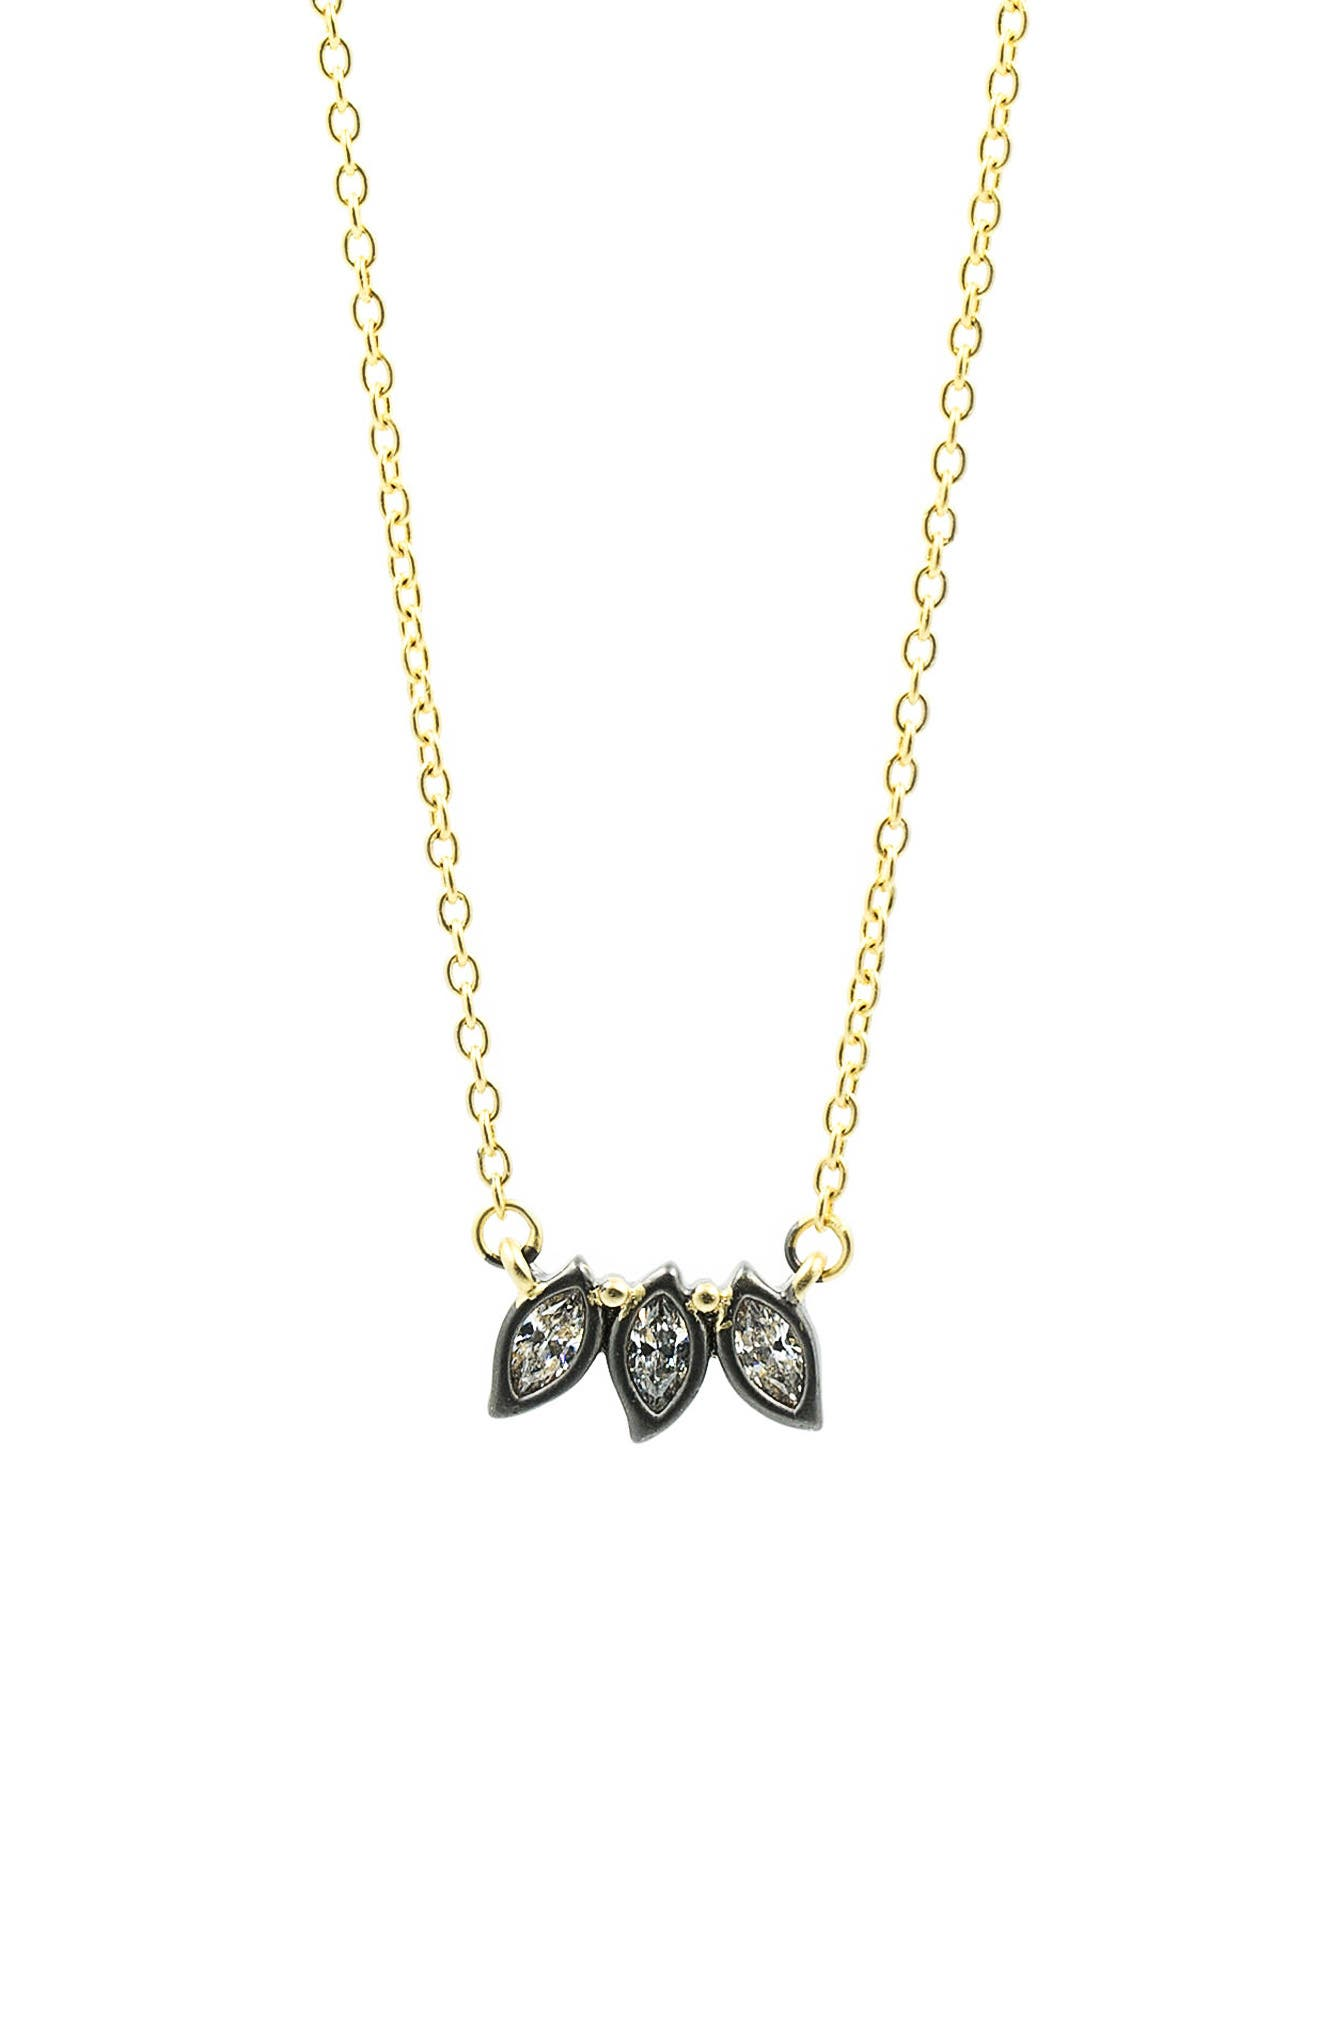 Fleur Bloom Triple Leaf Pendant Necklace,                             Main thumbnail 1, color,                             Gold/ Black Rhodium